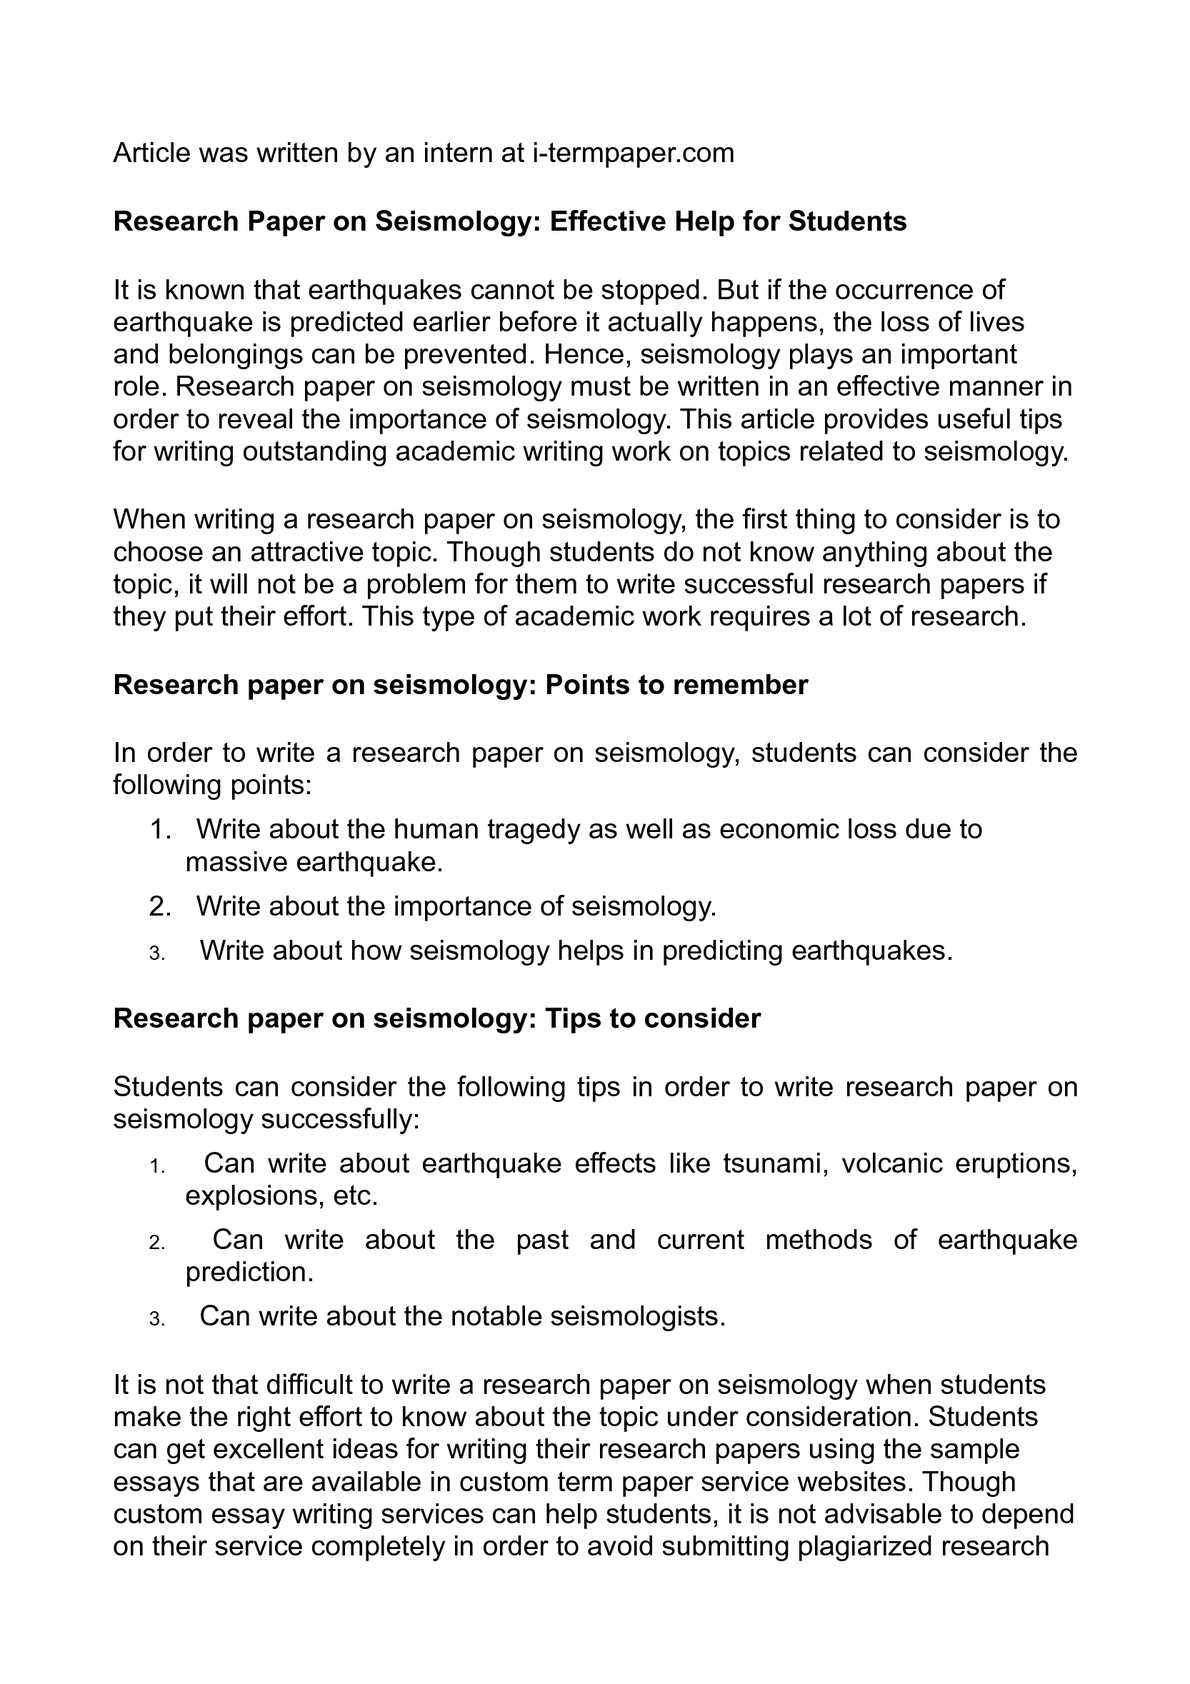 calam eacute o research paper on seismology effective help for students